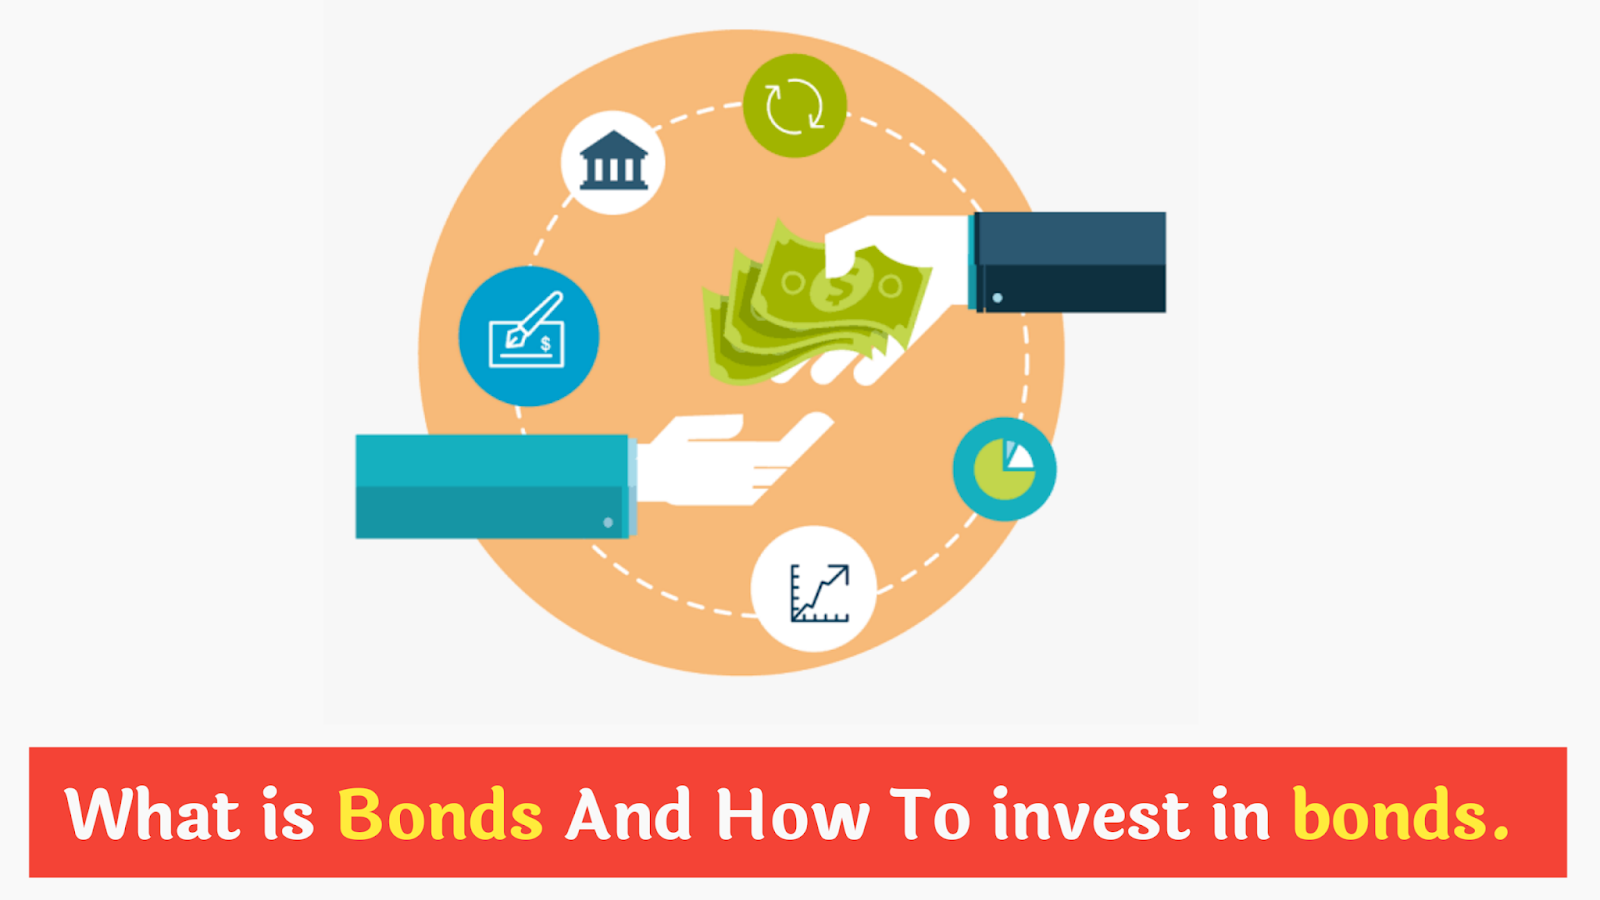 What is Bond, how to Invest in Bonds, what is debenture, What is Types of Bonds, how buy and sell Bonds.